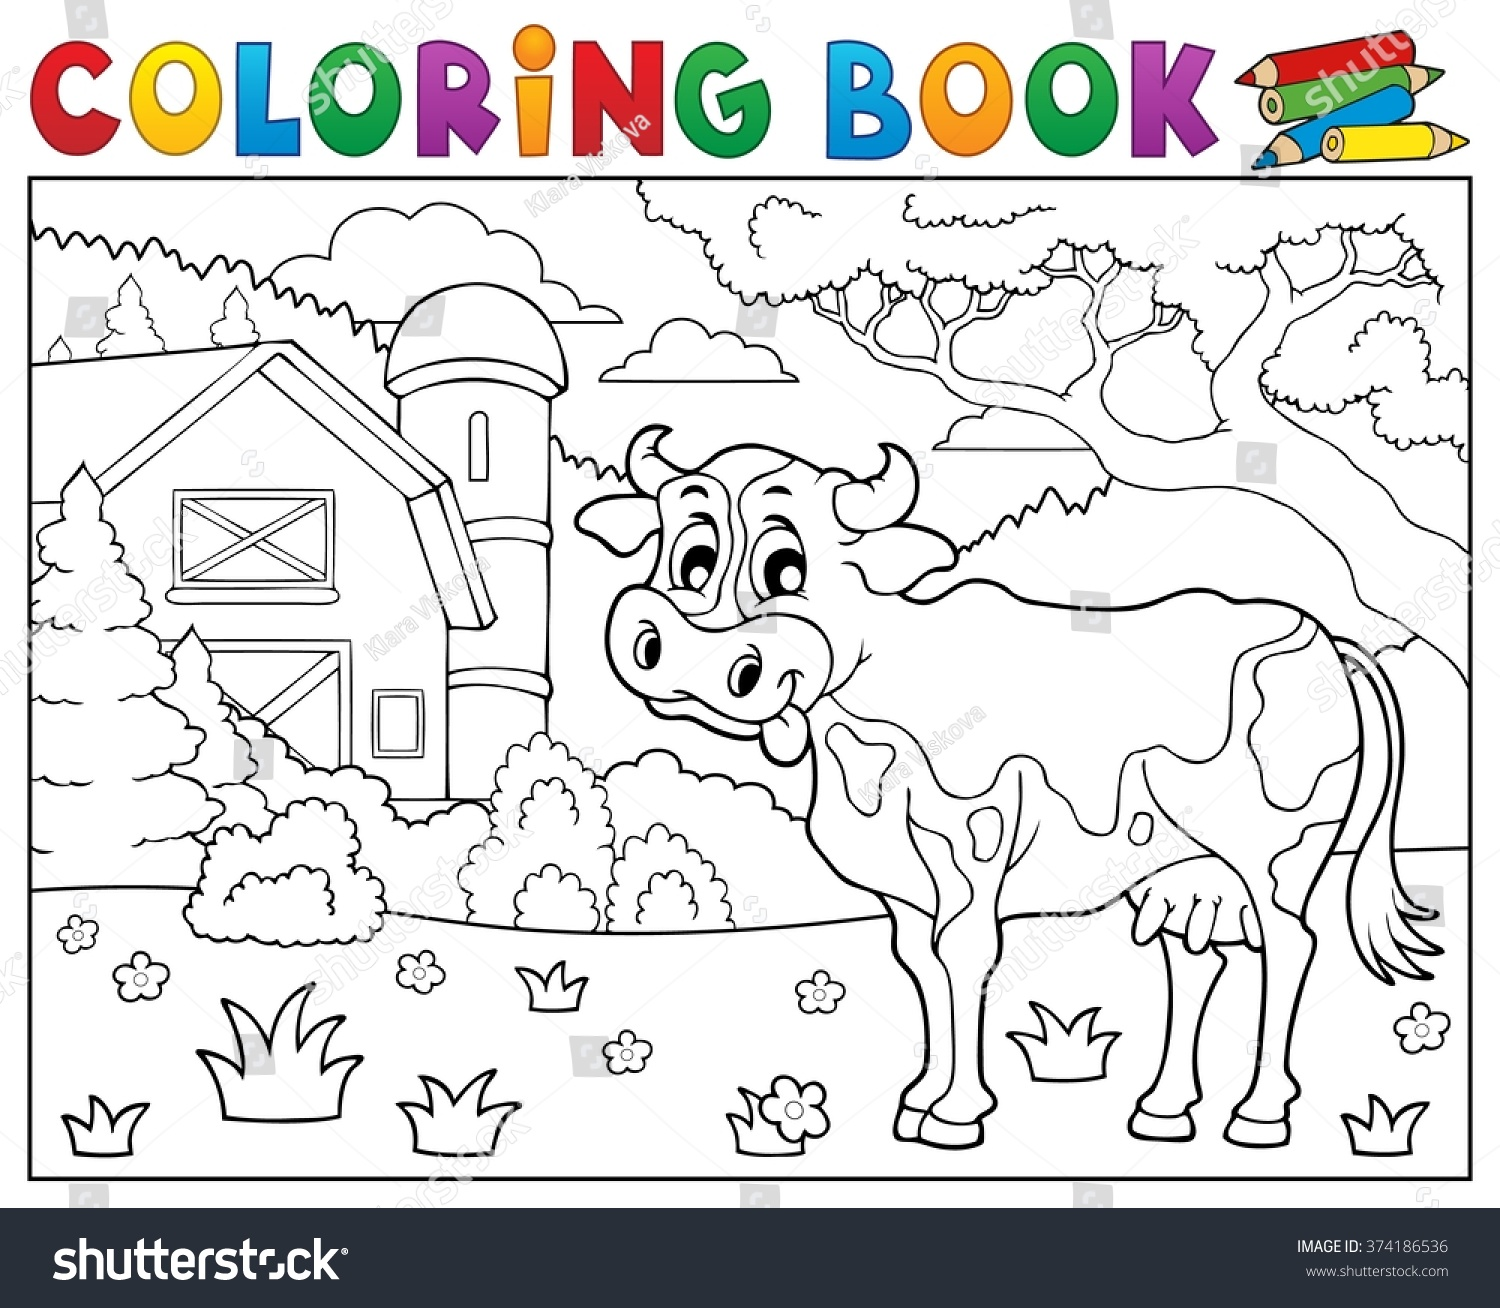 Fine Anti Stress Coloring Book Tiny Christian Coloring Books Rectangular Mystical Mandala Coloring Book Lord Of The Rings Coloring Book Youthful Abstract Coloring Books GreenColoring Book Publishers Coloring Book Cow Near Farm Theme Stock Vector 374186536 ..